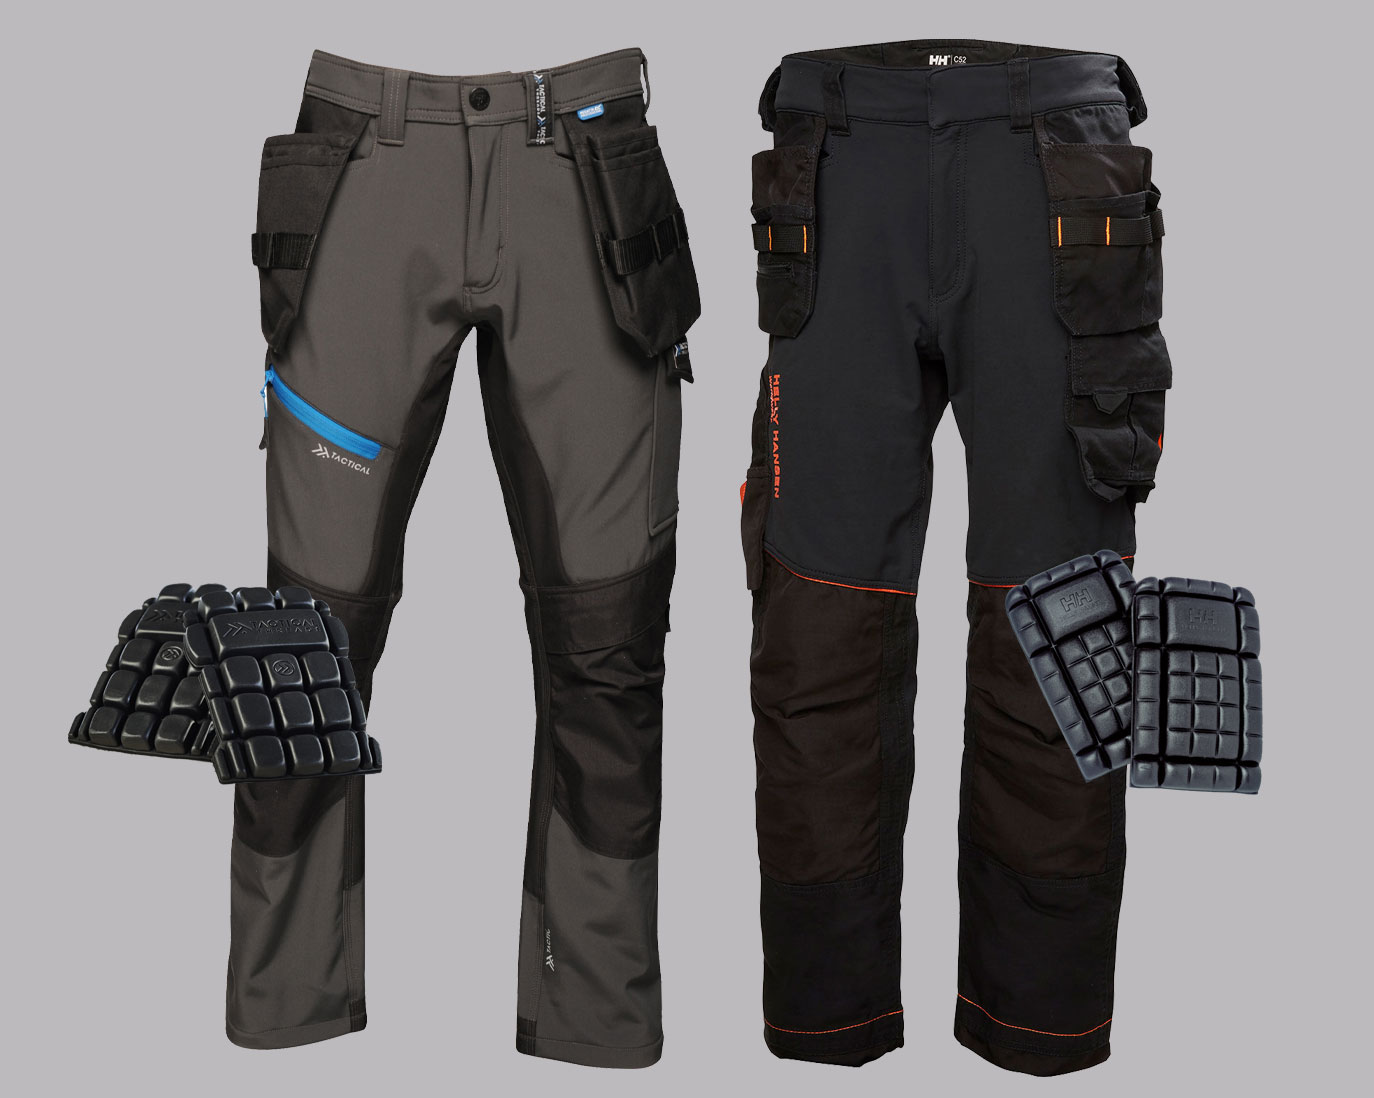 Kneepad Trousers & Accessories